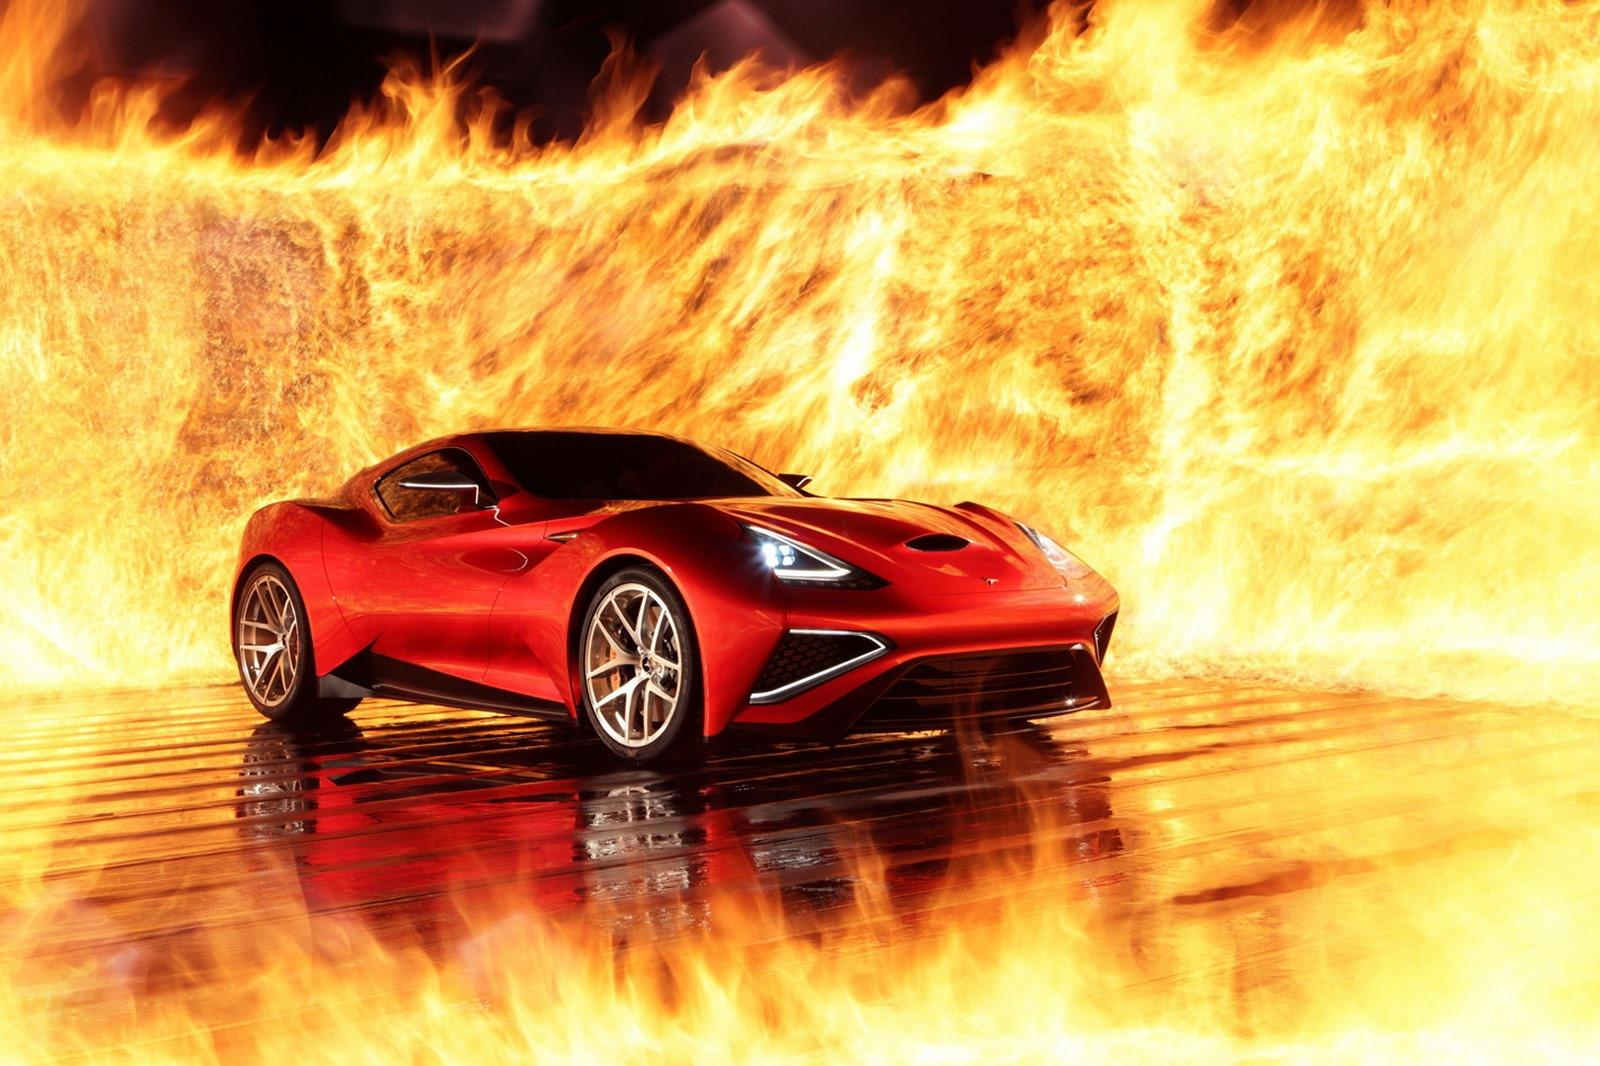 Icona Vulcano Hybrid Supercar Supercars Fire Wallpaper